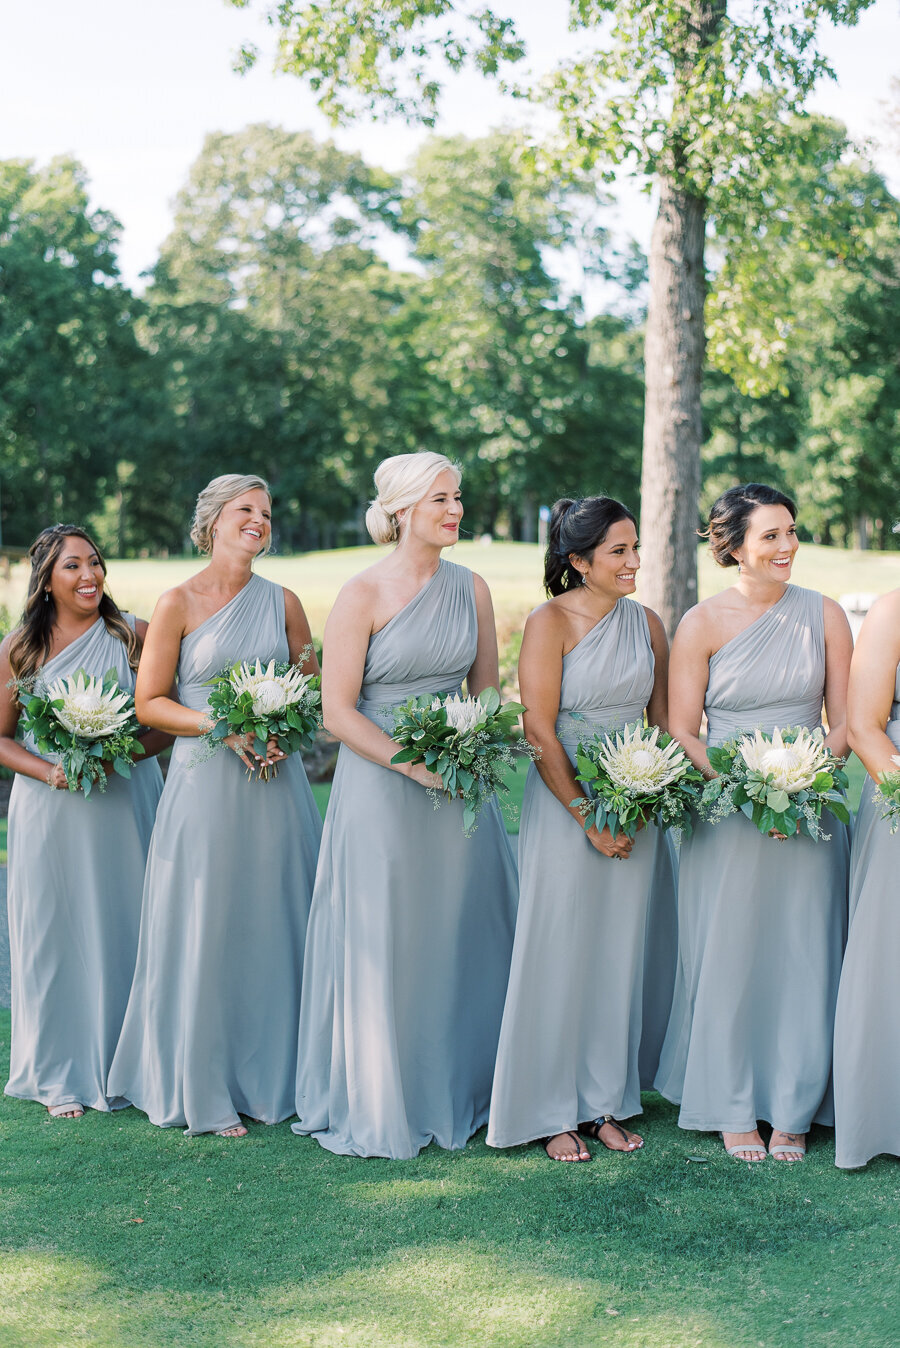 Prospect_Bay_Country_Club_Wedding_Maryland_Megan_Harris_Photography-32